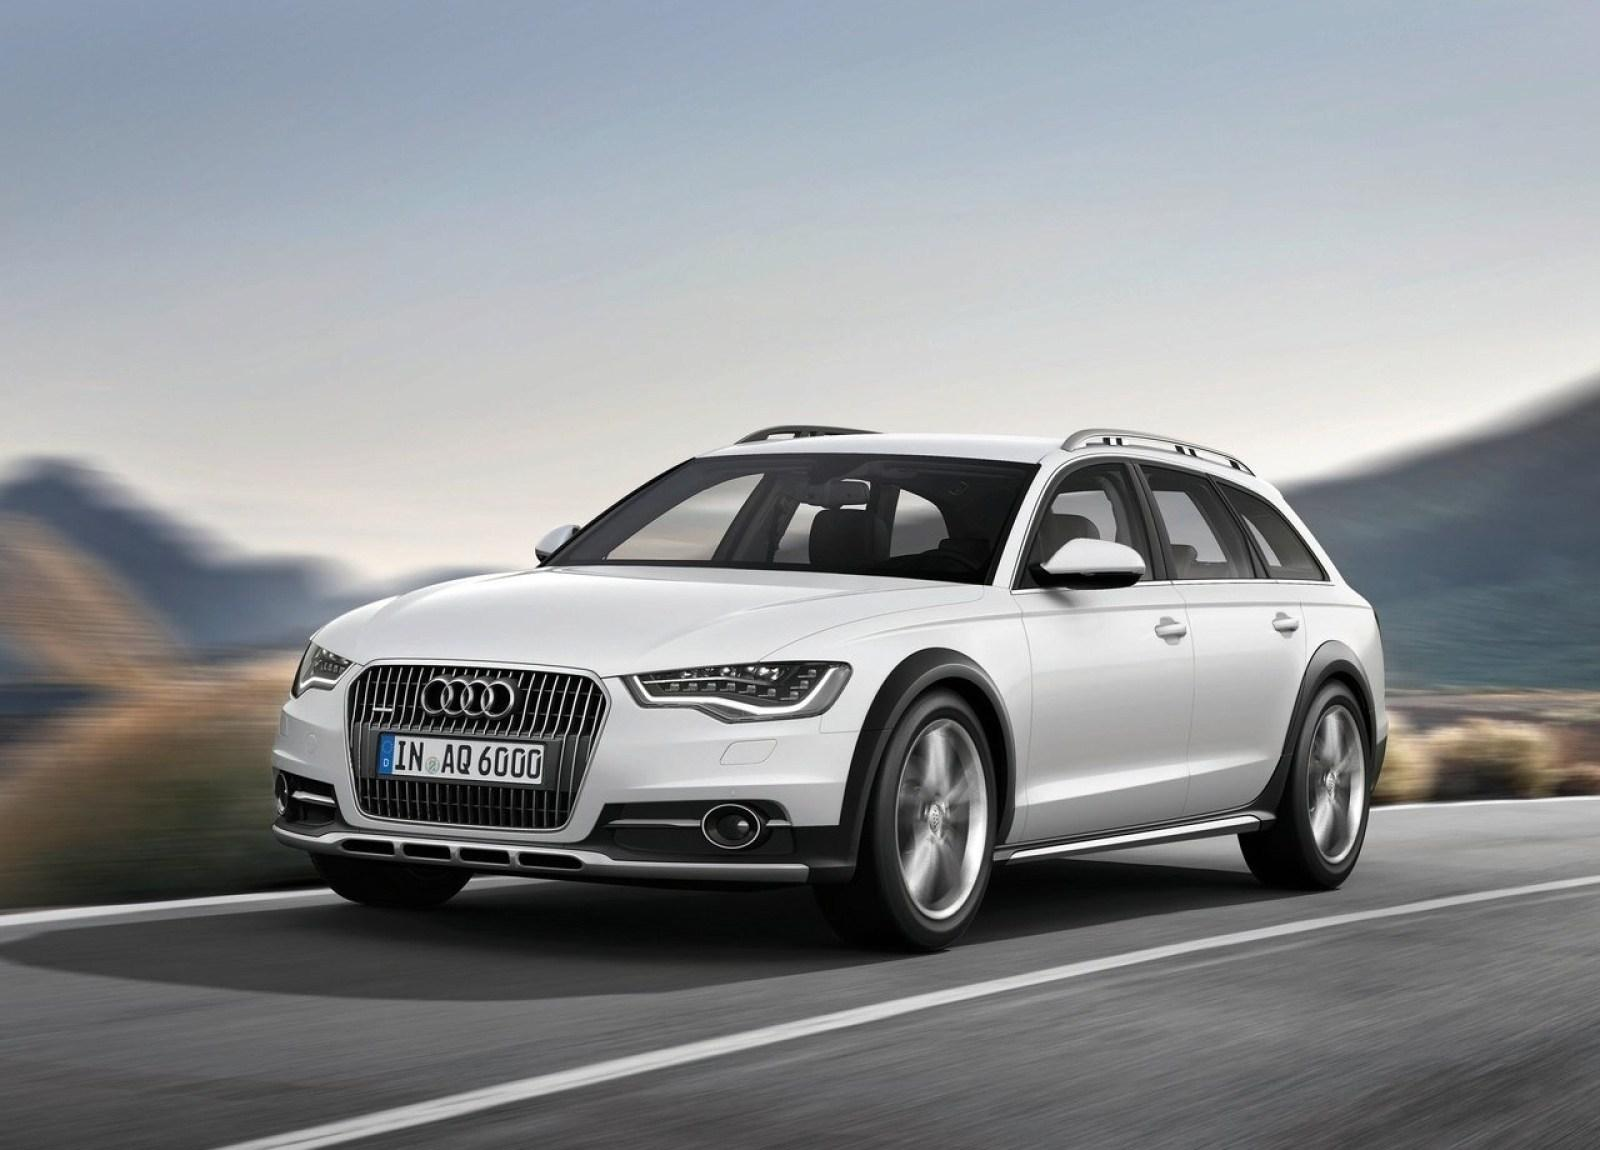 Audi A6 Allroad Hd Wallpapers The World Of 2013 Wallpaper - Velgen 20